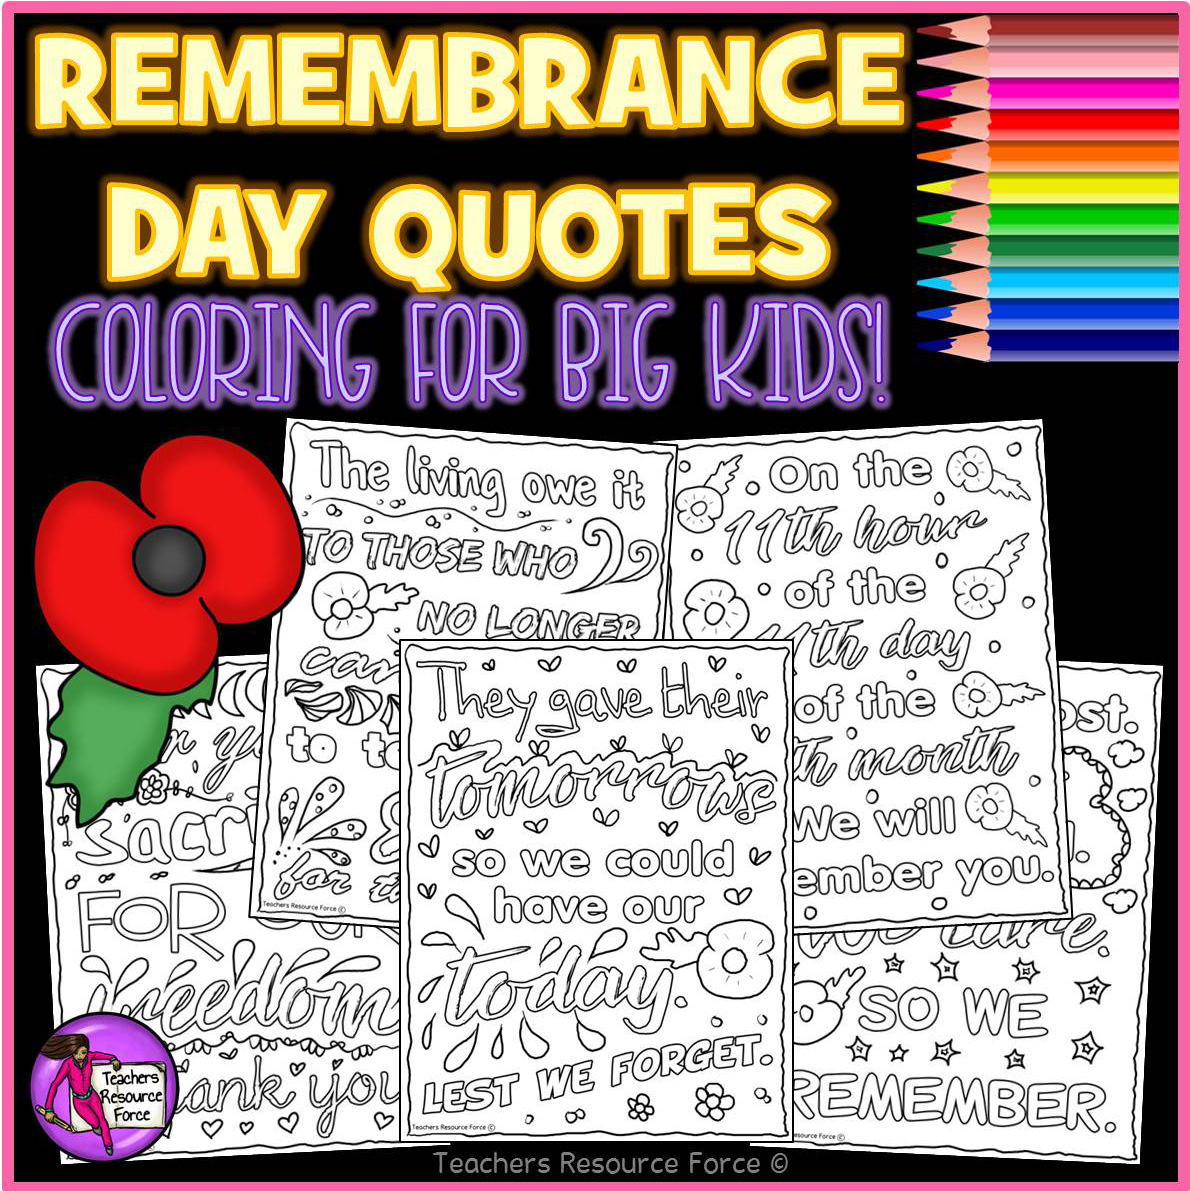 Remembrance Memorial Day Quote Colouring Pages For Big